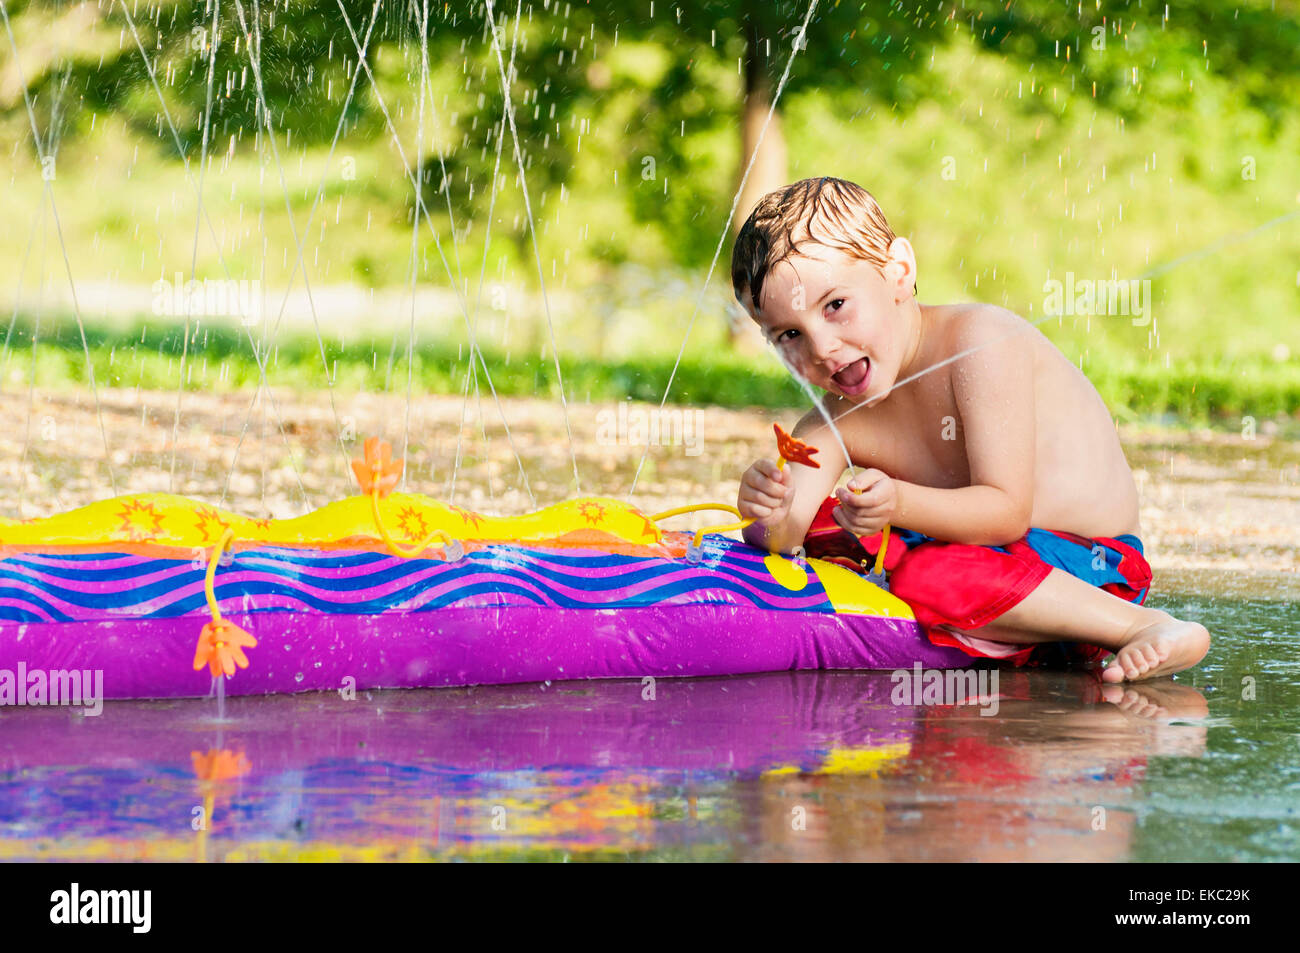 Young boy sprays water - Stock Image